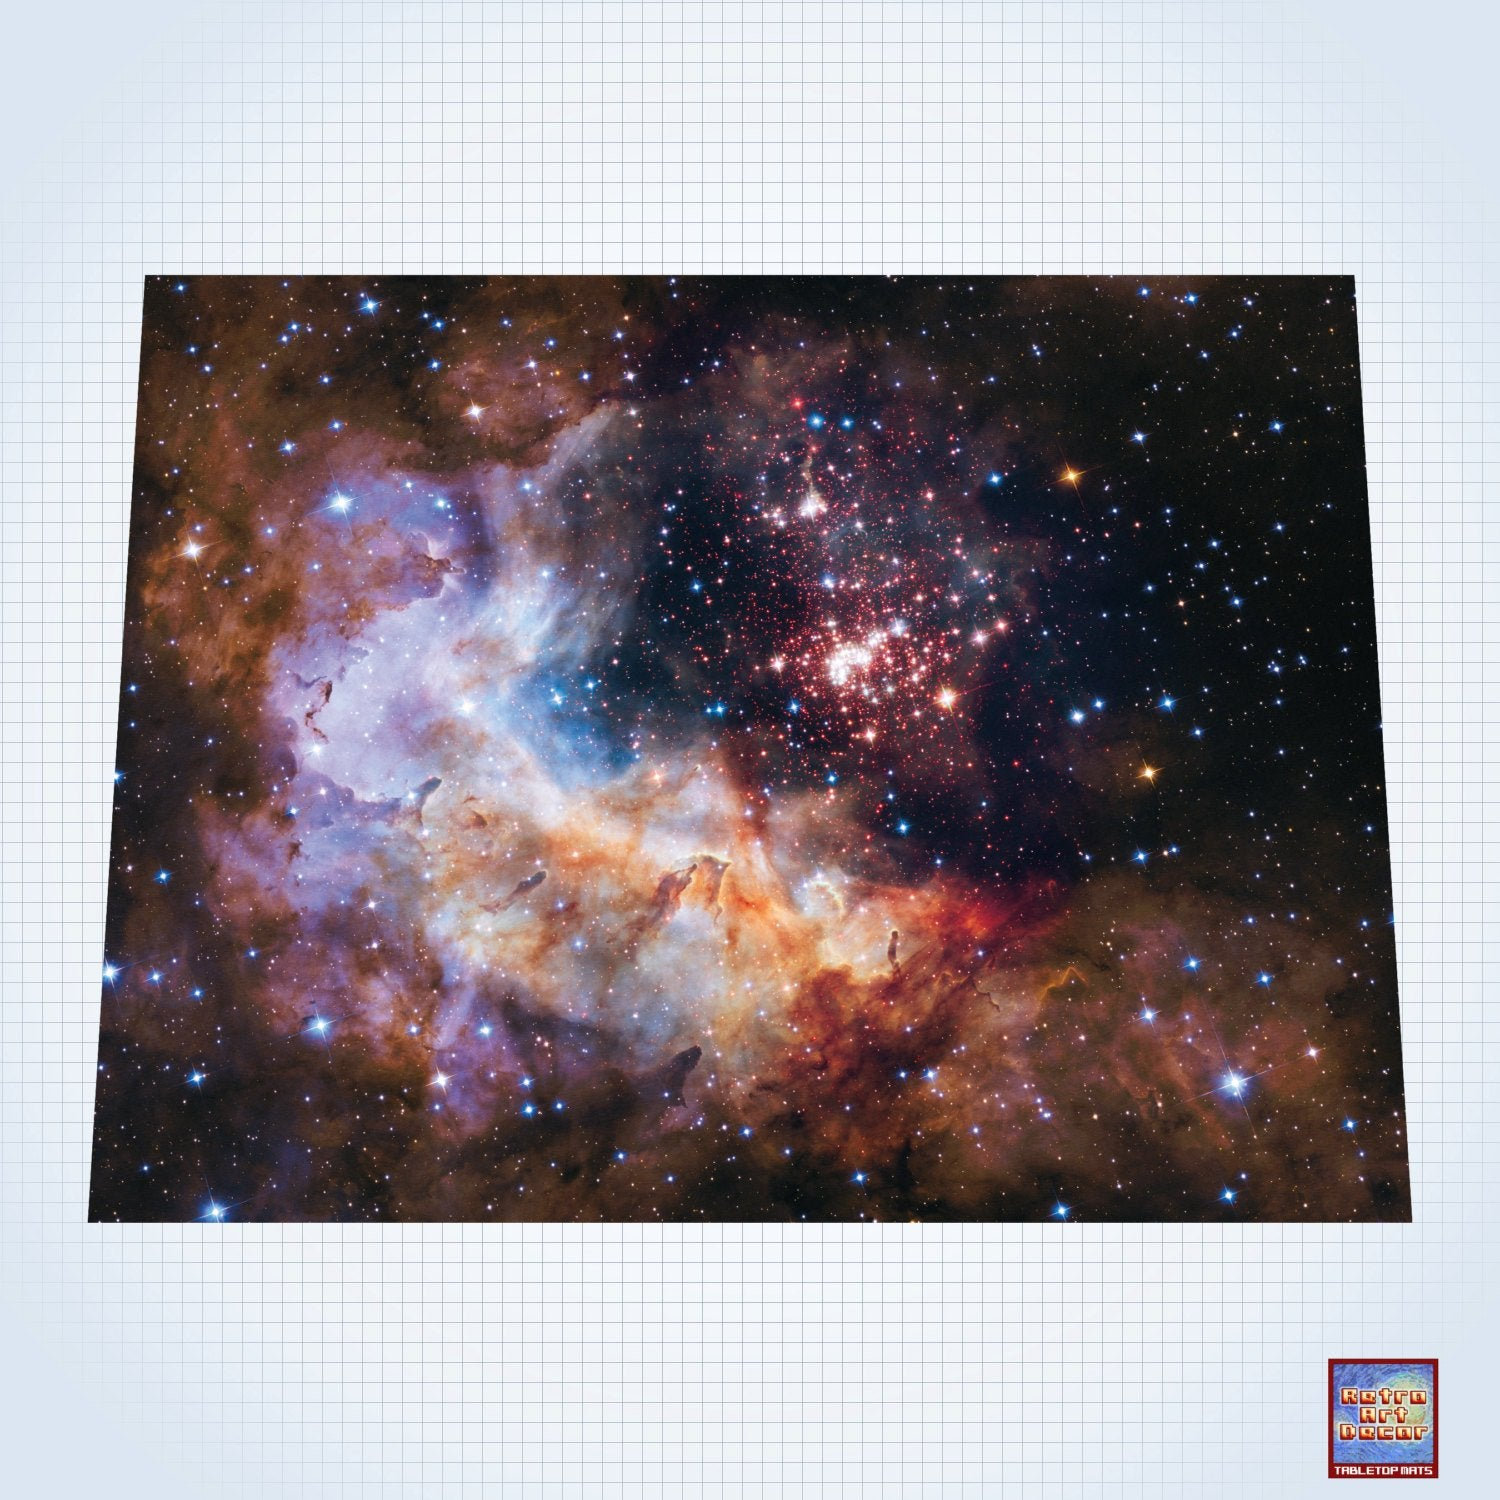 "Galaxy, Celestial Fireworks - #GM102 - 60"" x 80"" (4' x 6' plus) Fleece Table Top Gaming Mat"